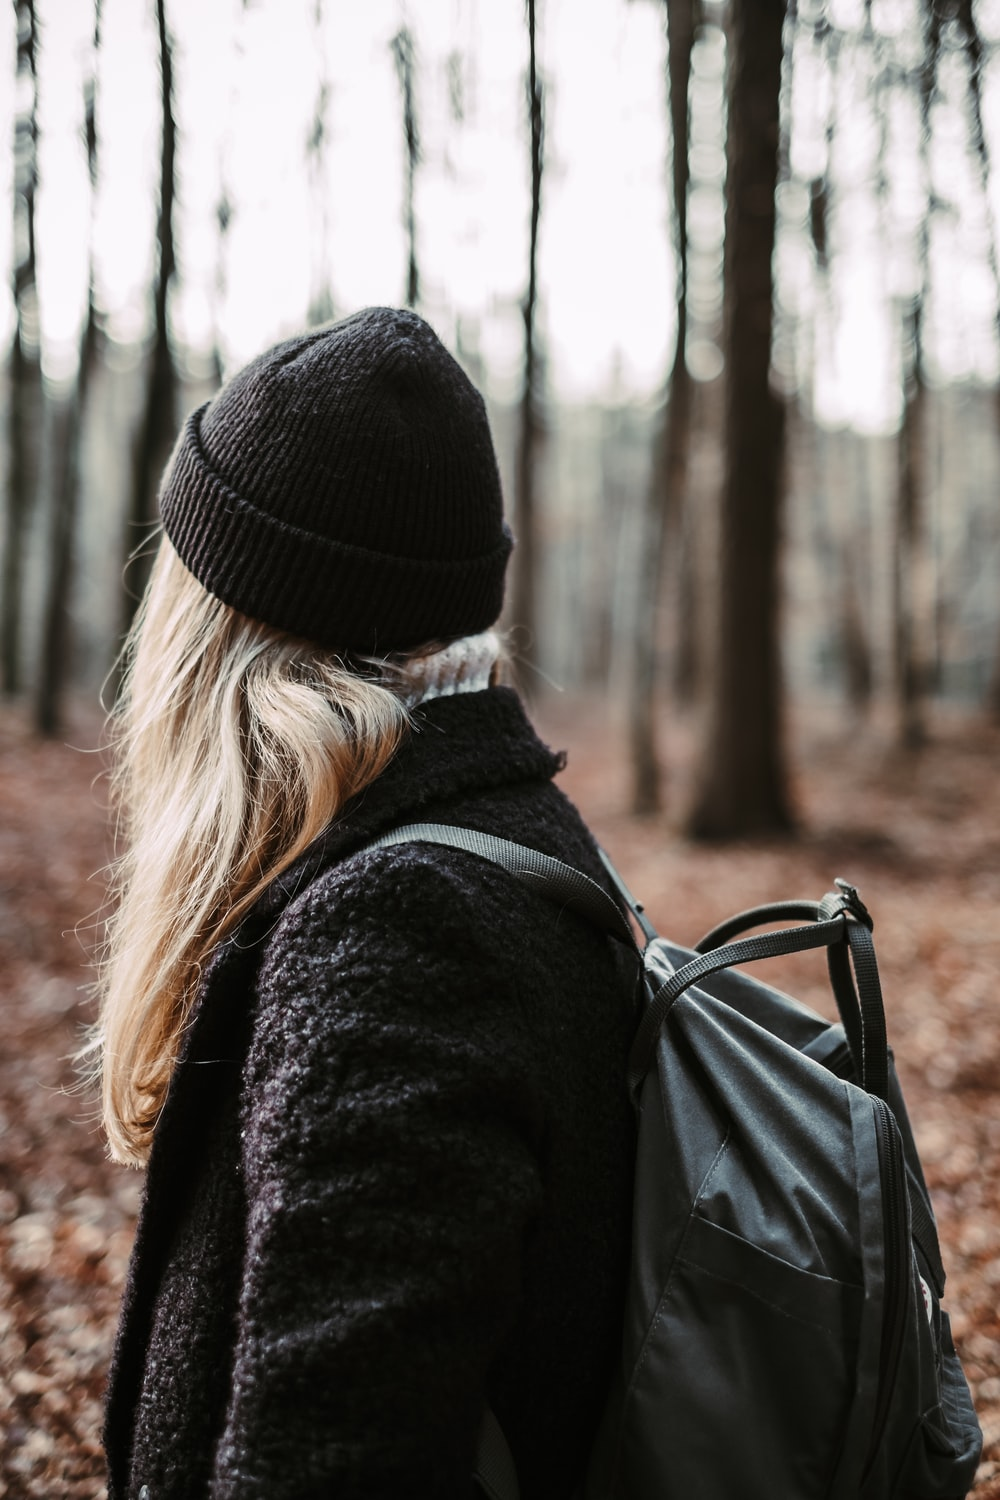 woman wearing black knit cap and jacket with backpack in forest during daytime